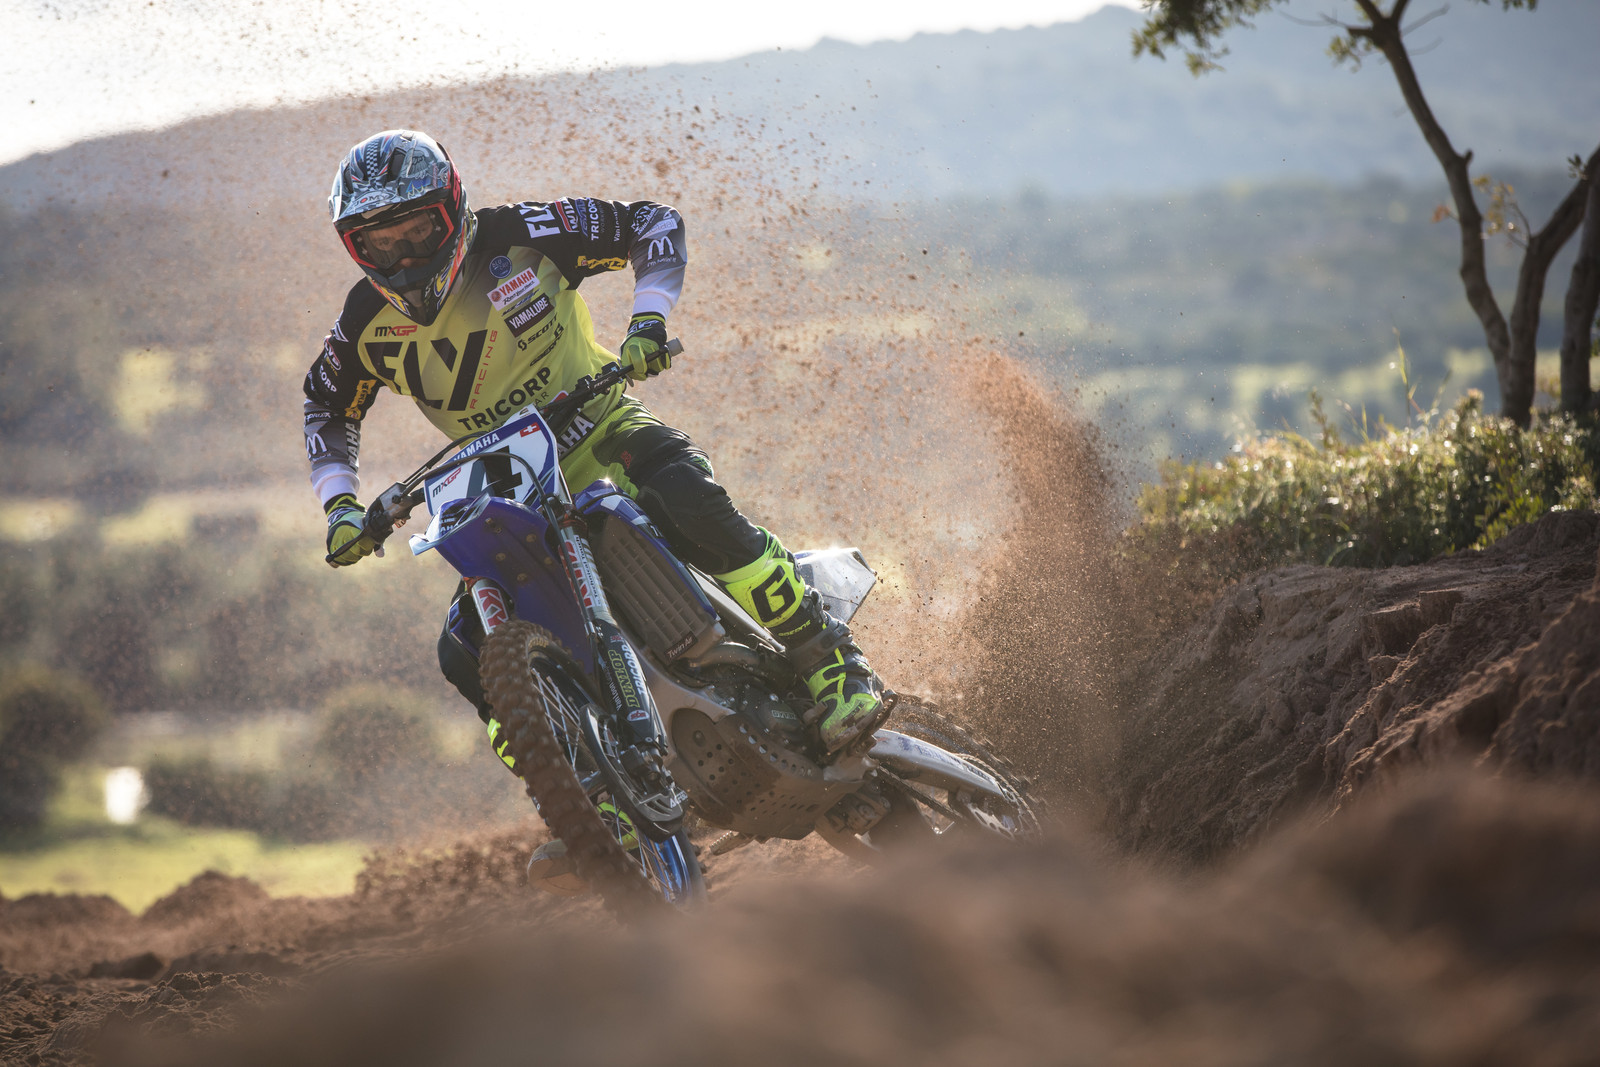 Arnaud Tonus - First Look: 2017 Monster Energy & Wilvo Yamaha MXGP Teams - Motocross Pictures - Vital MX